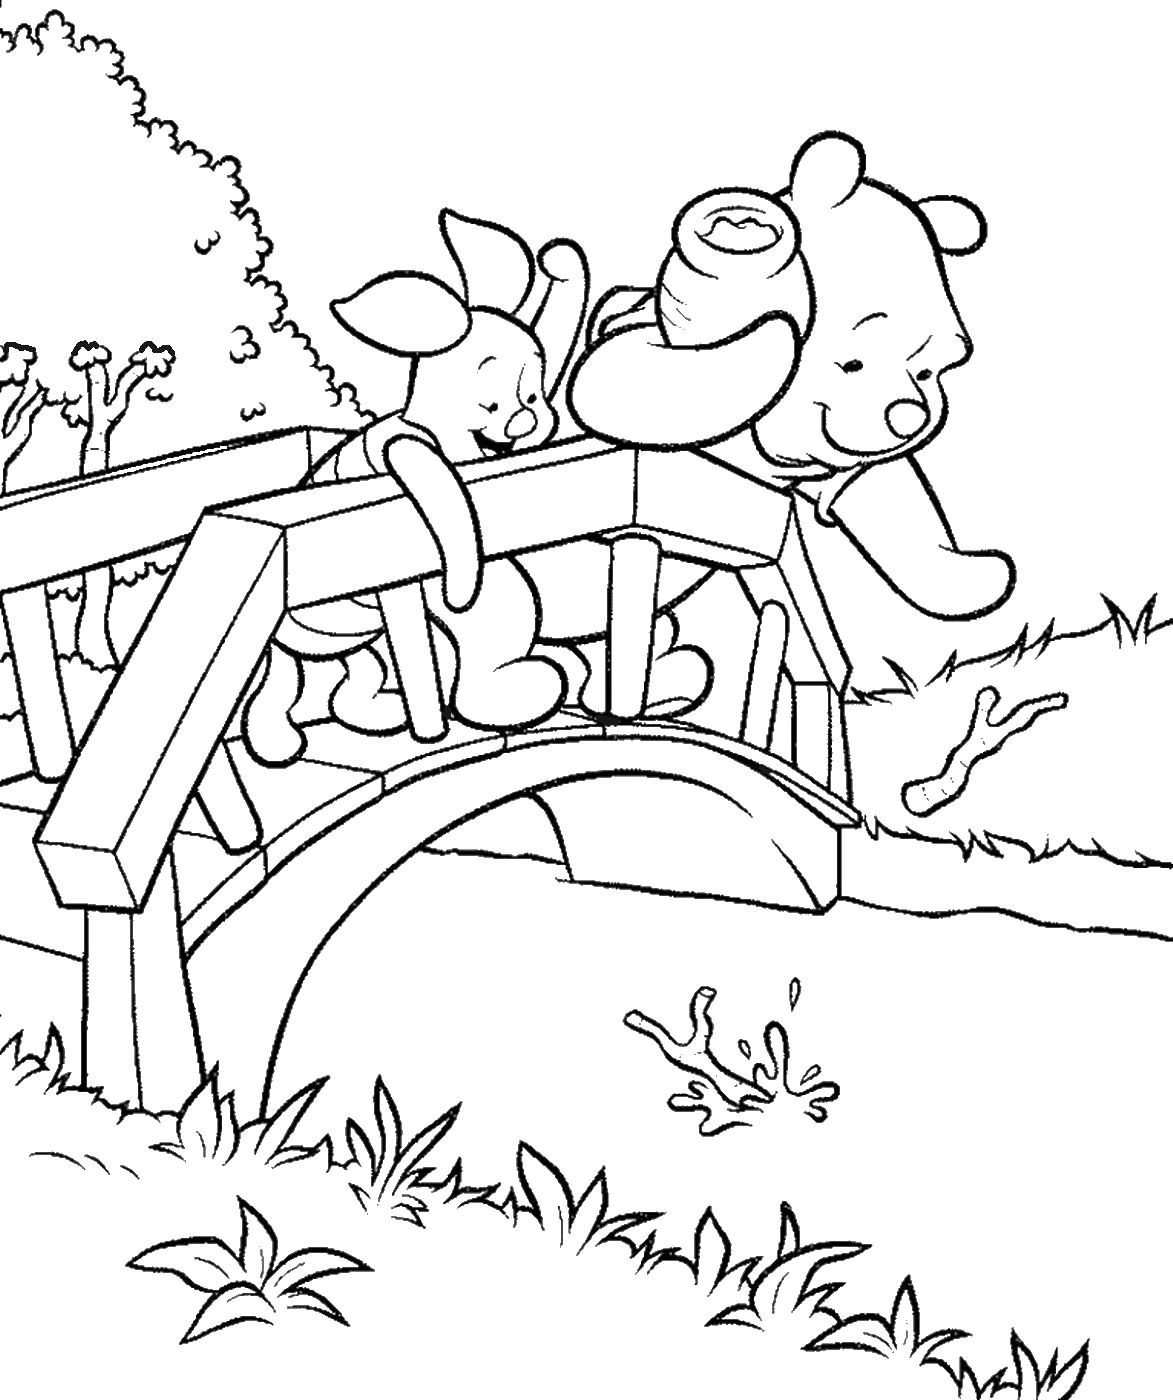 winnie the pooh pictures to color winnie the pooh friends coloring pages 4 disneyclipscom color to pictures winnie the pooh